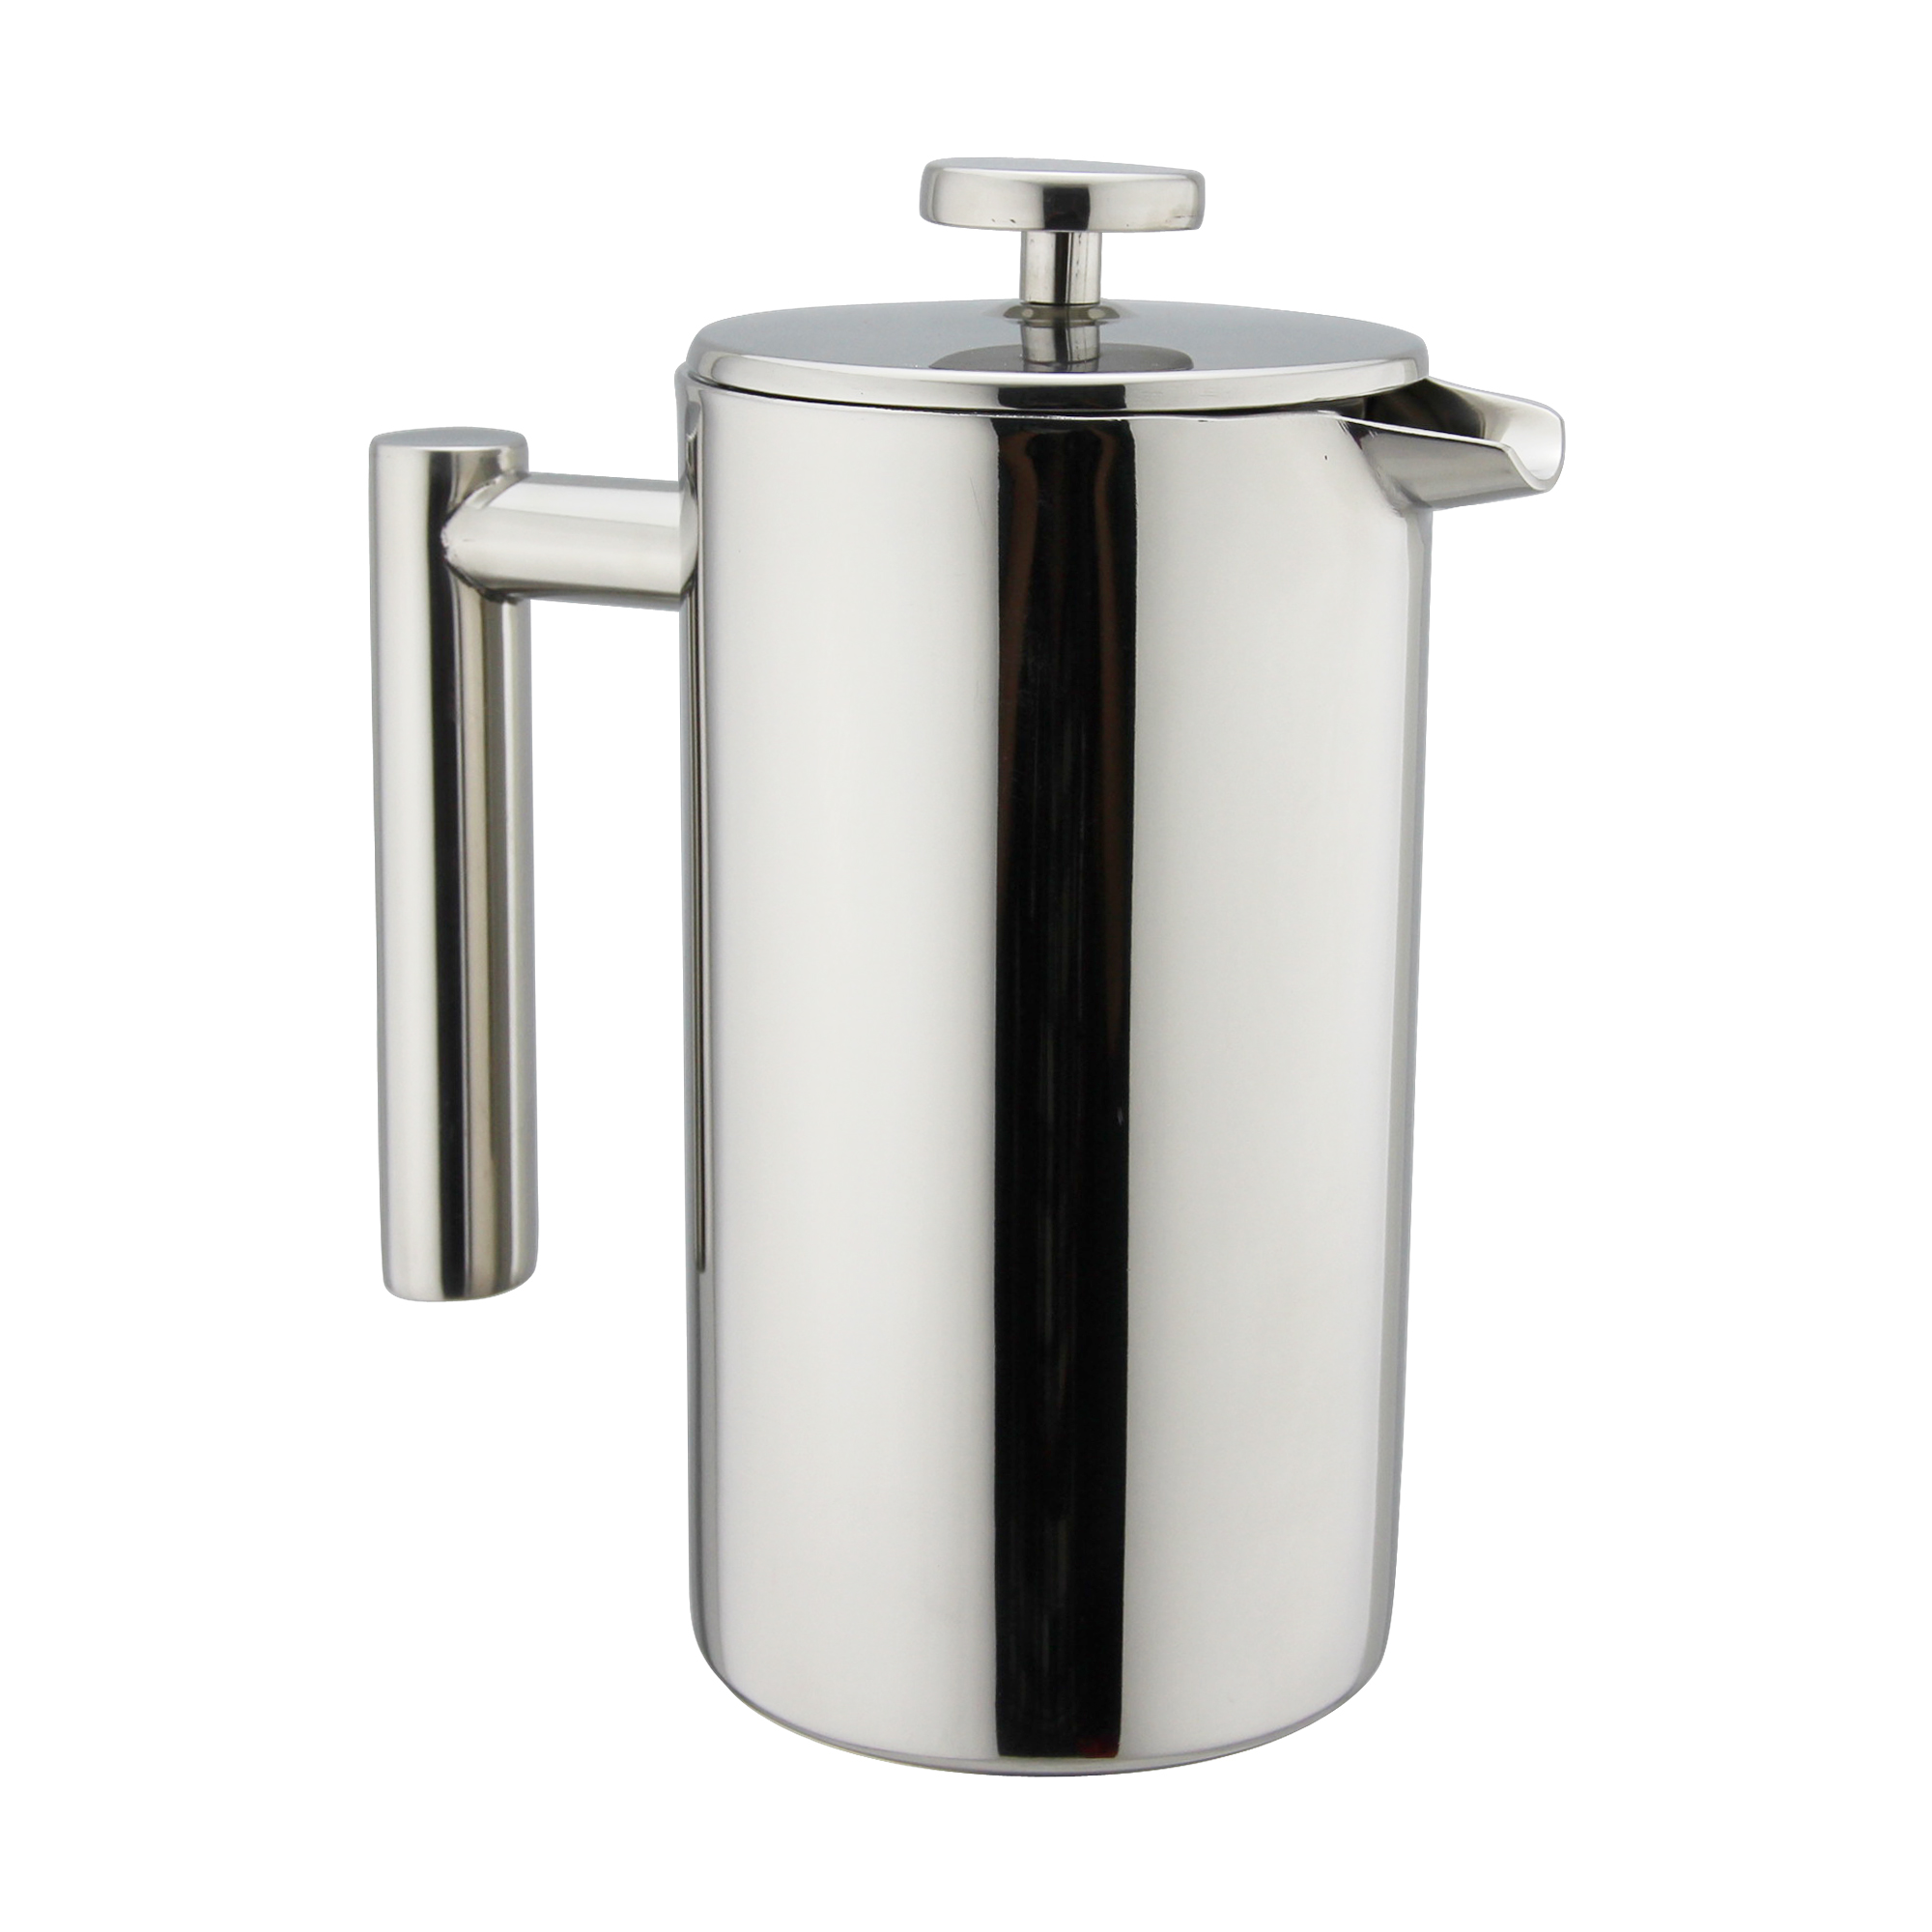 8 cup stainless steel french press kuissential. Black Bedroom Furniture Sets. Home Design Ideas